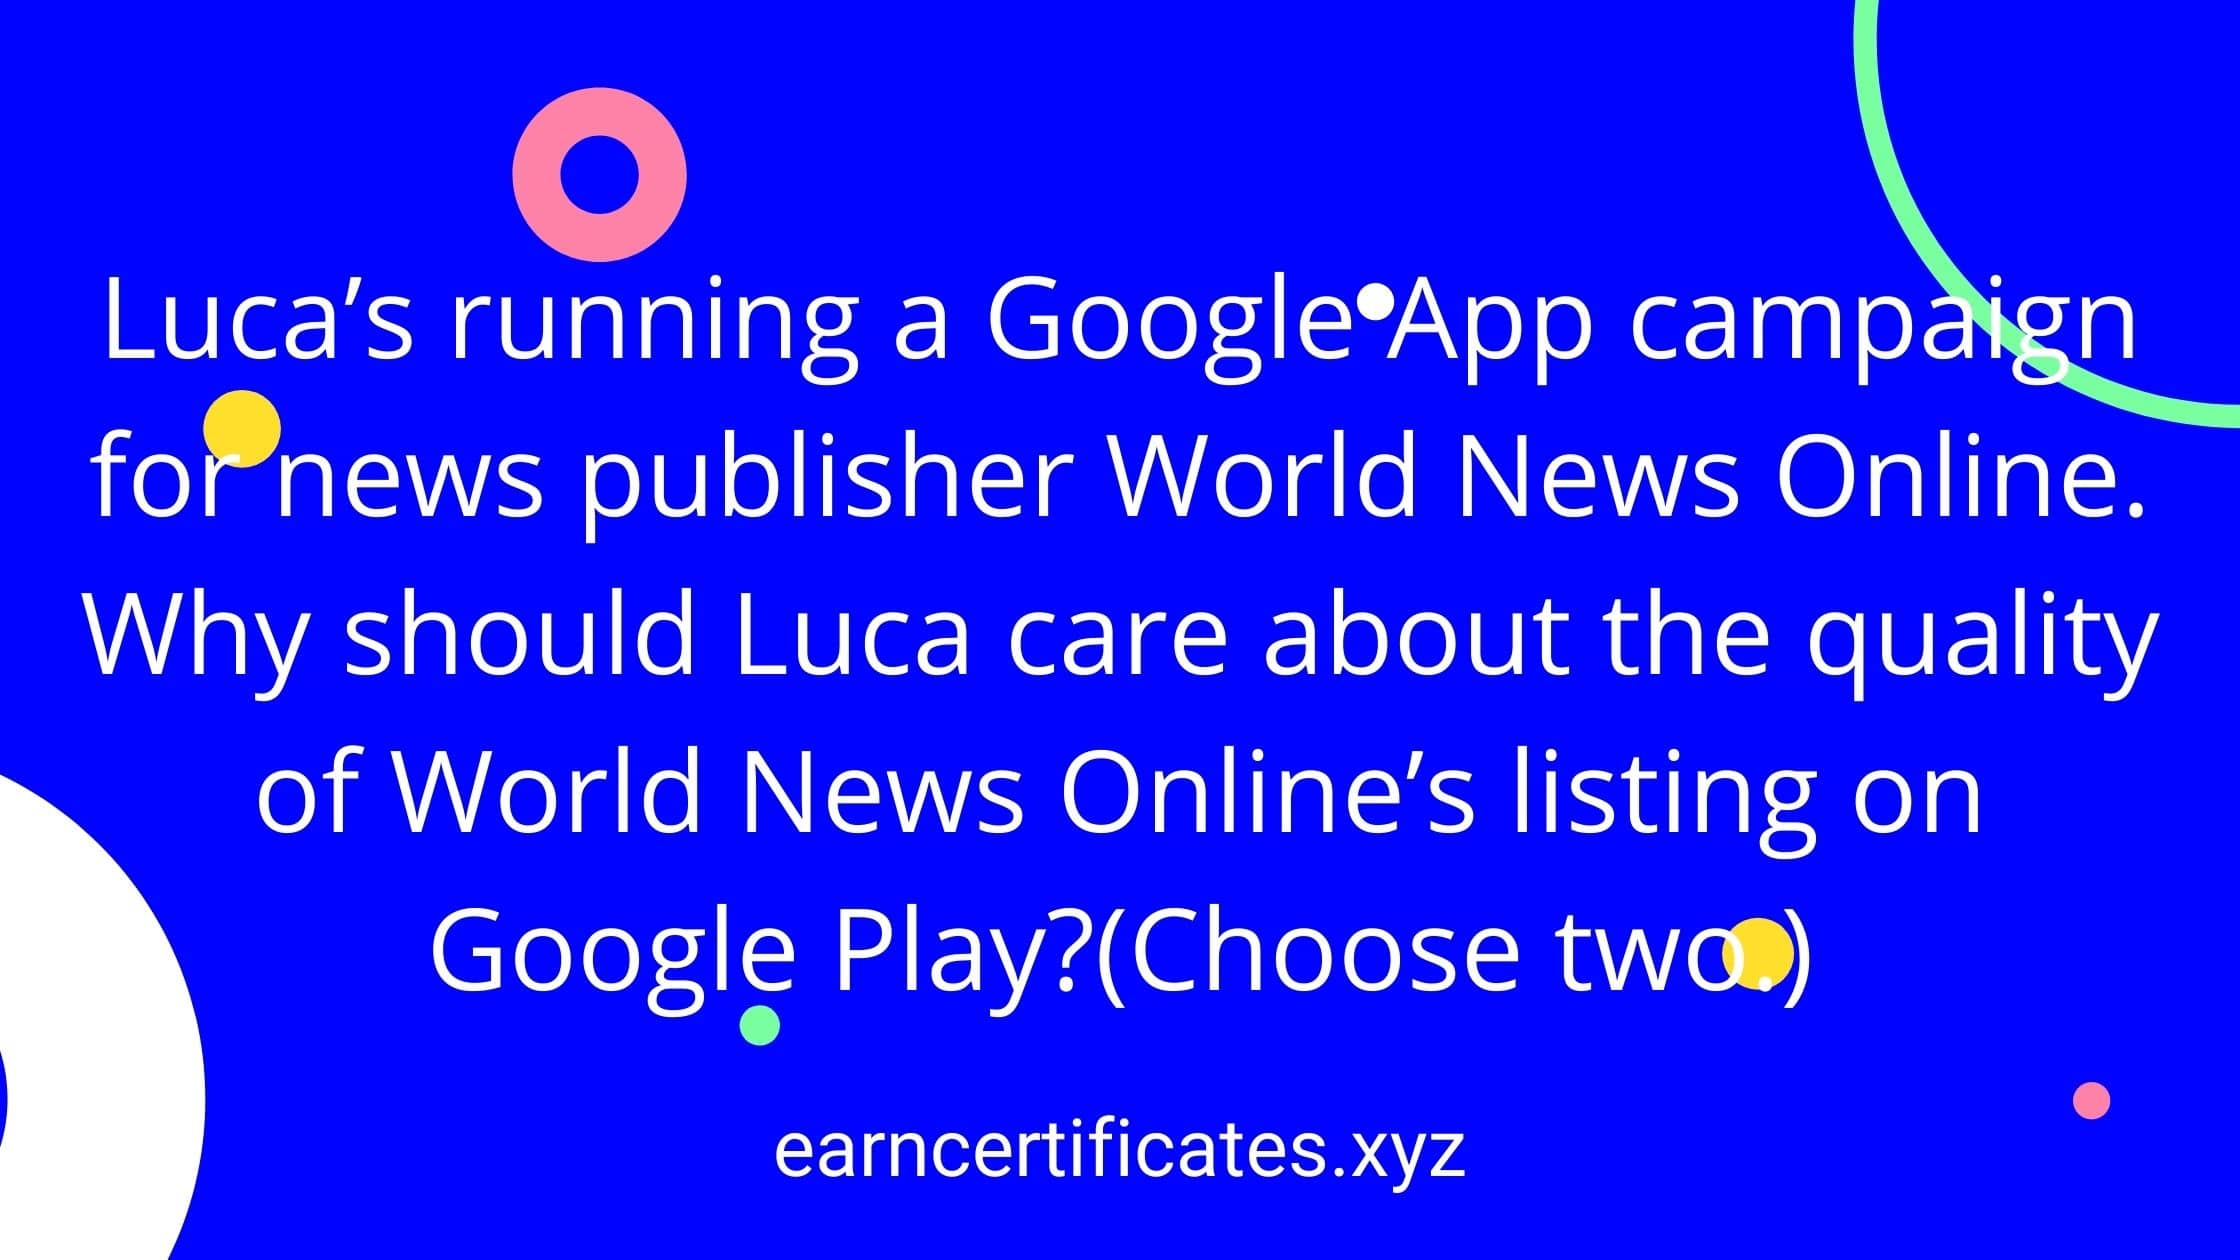 Luca's running a Google App campaign for news publisher World News Online. Why should Luca care about the quality of World News Online's listing on Google Play?(Choose two.)